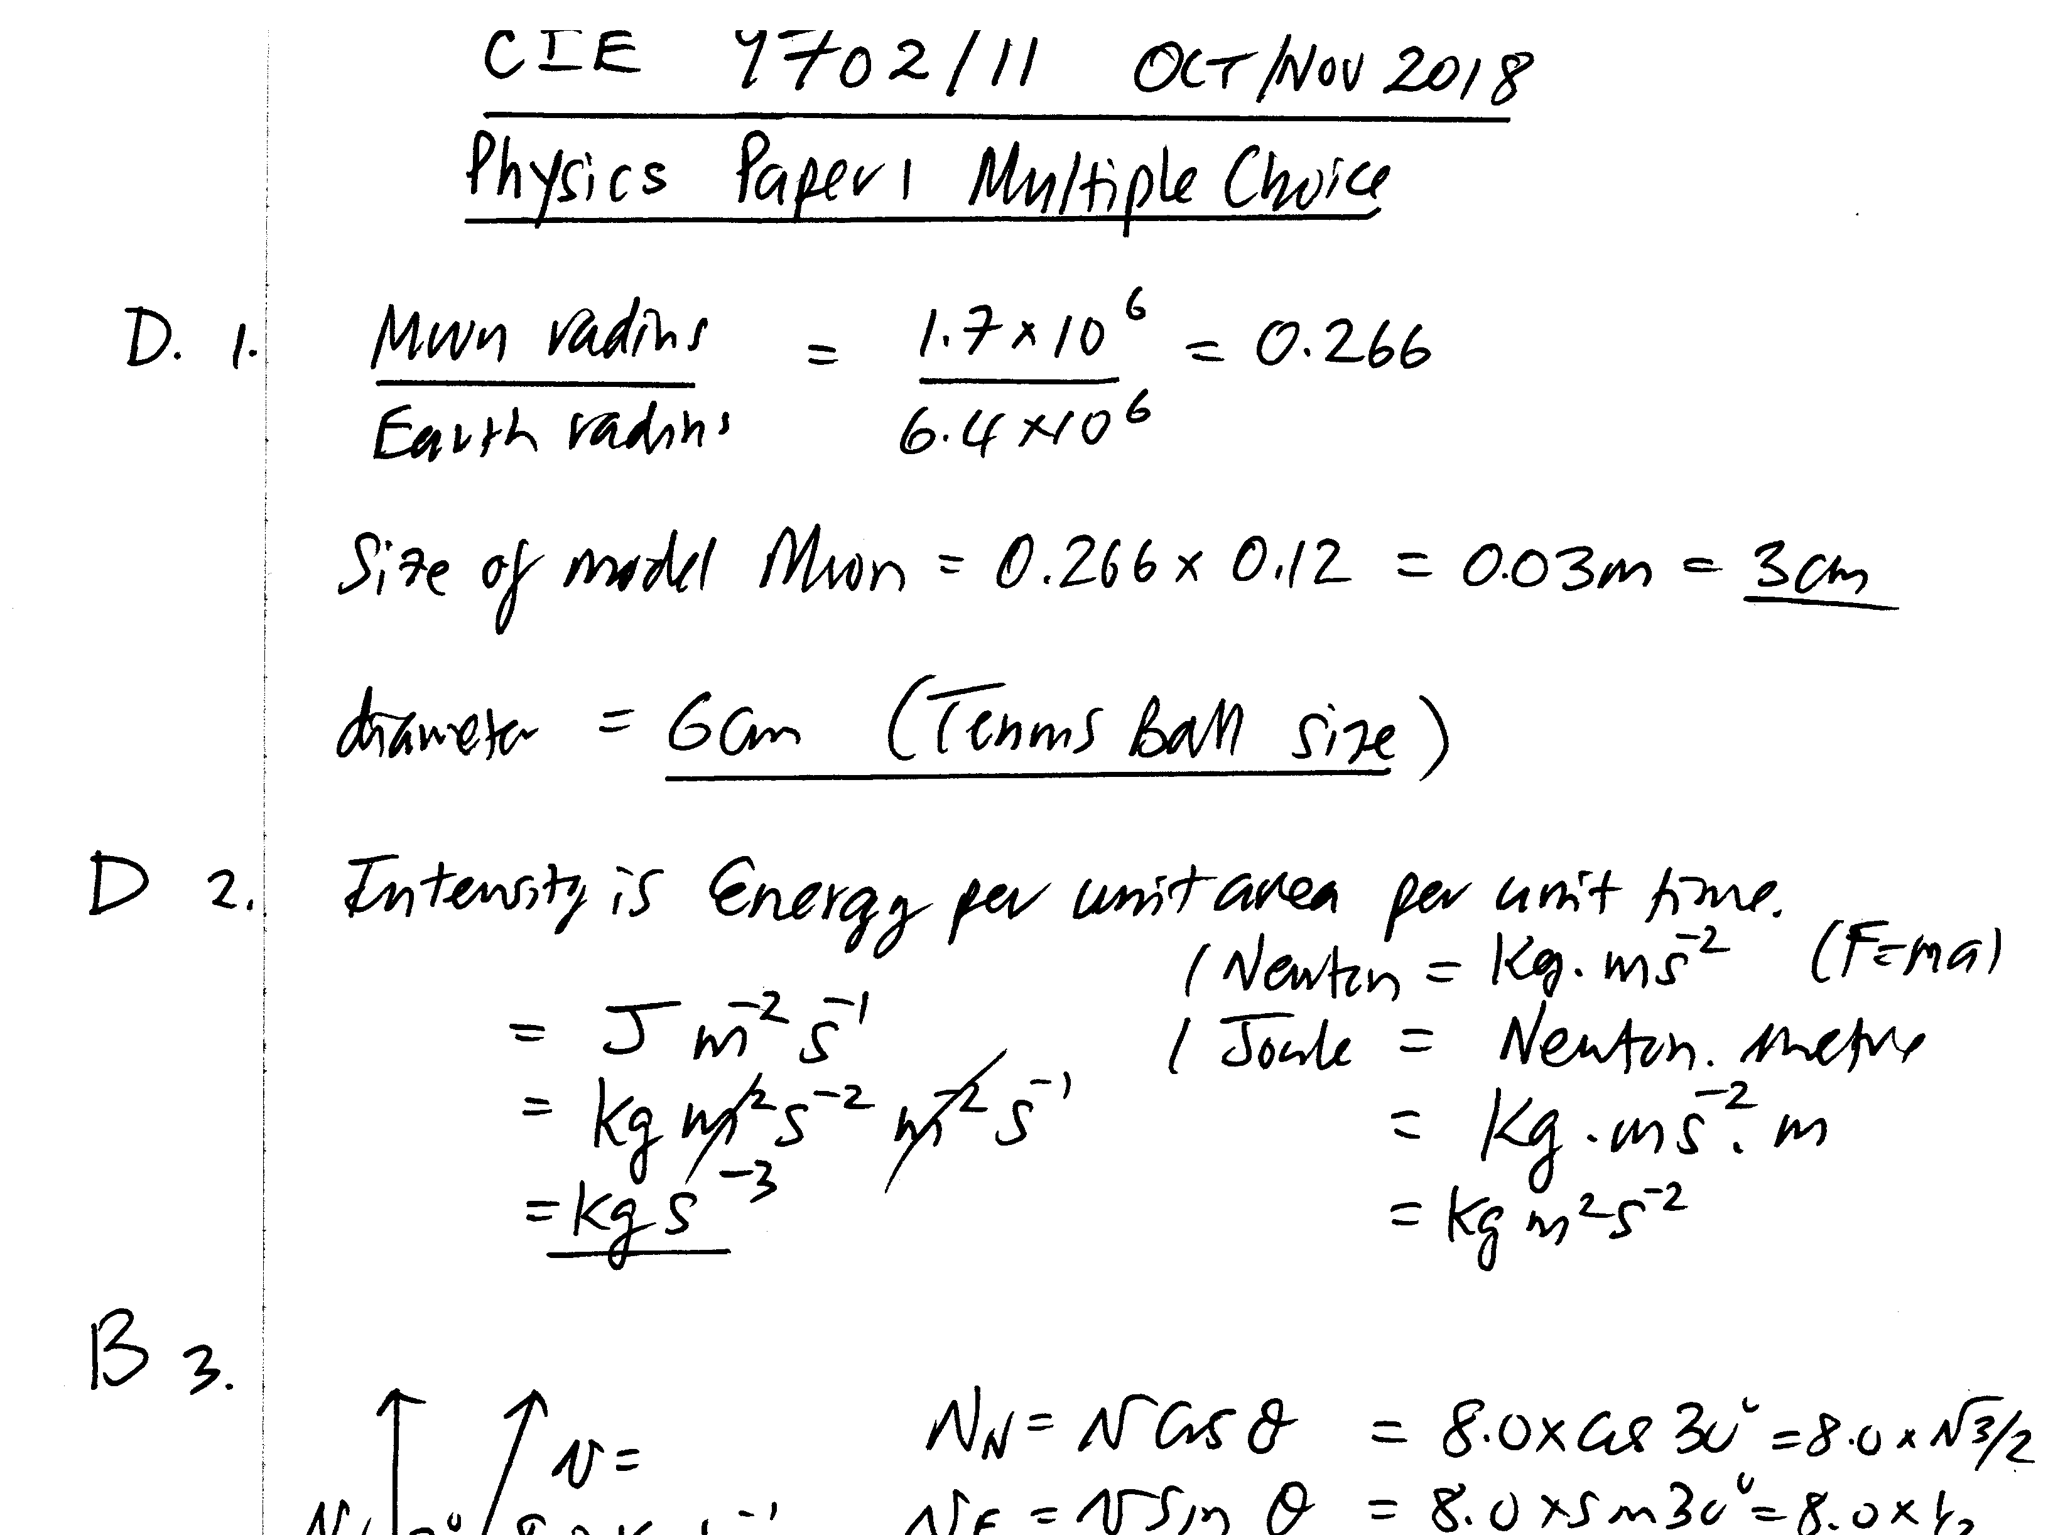 CIE A Level 9702/11 Oct/Nov 2018 Multiple Choice Detailed Solutions